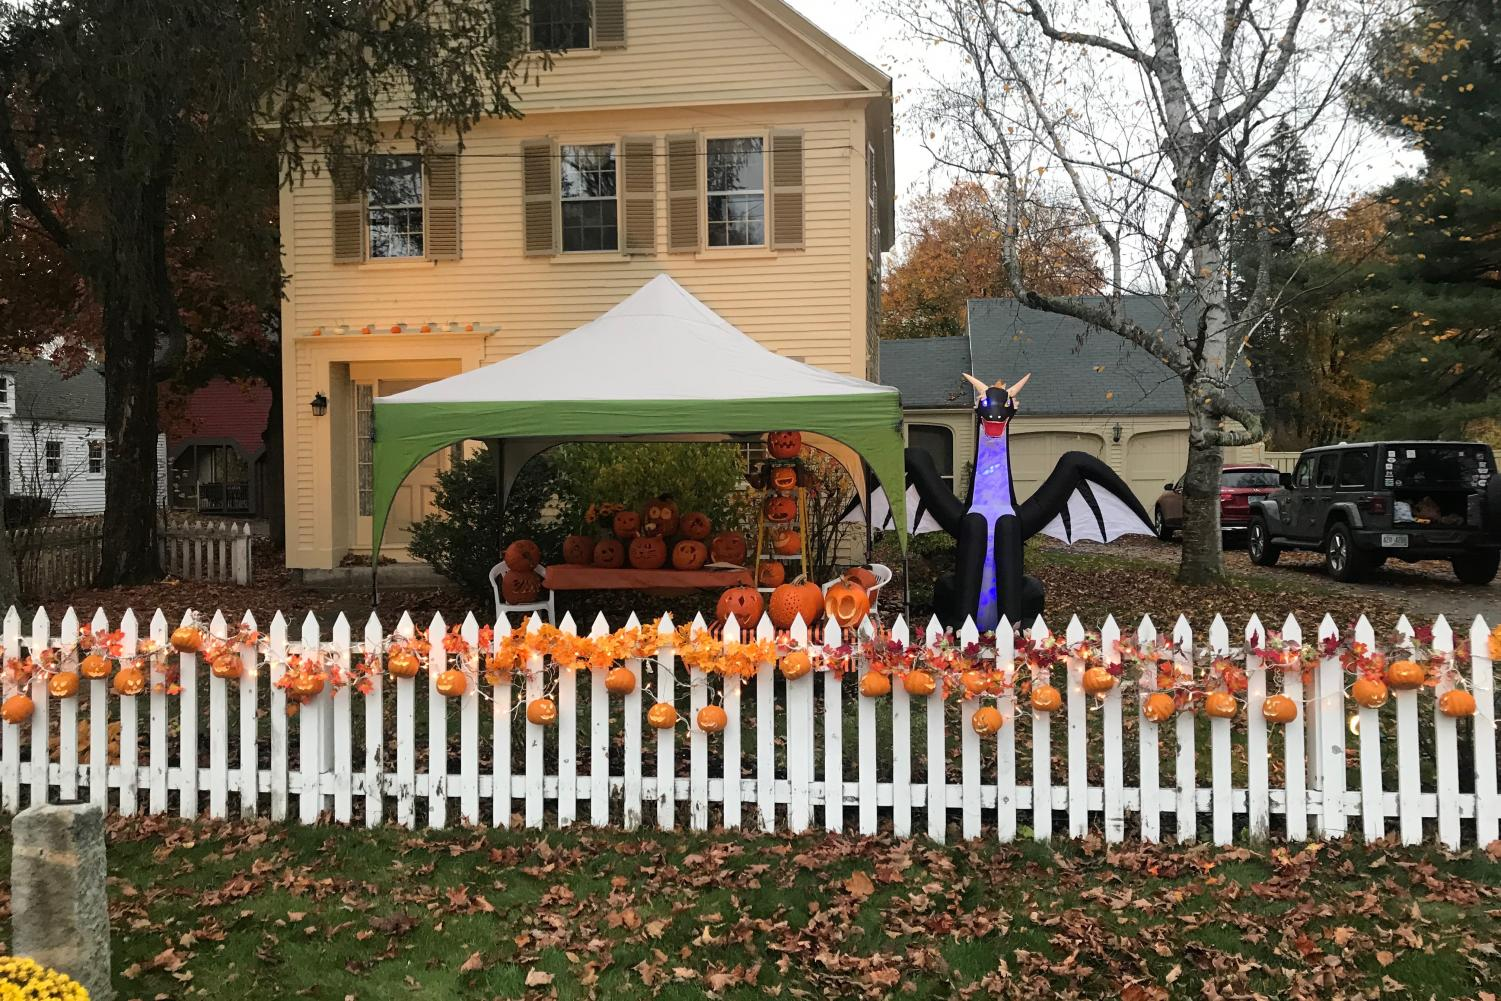 """Moments before trick or treaters filled the streets and Halloween festivities begin. The Amherst Village hosts a Halloween extravaganza every year, with each house trying to outdo the next. """"Halloween is a great time to enjoy with friends and make forever lasting memories,"""" Said HB senior Alex Lee."""